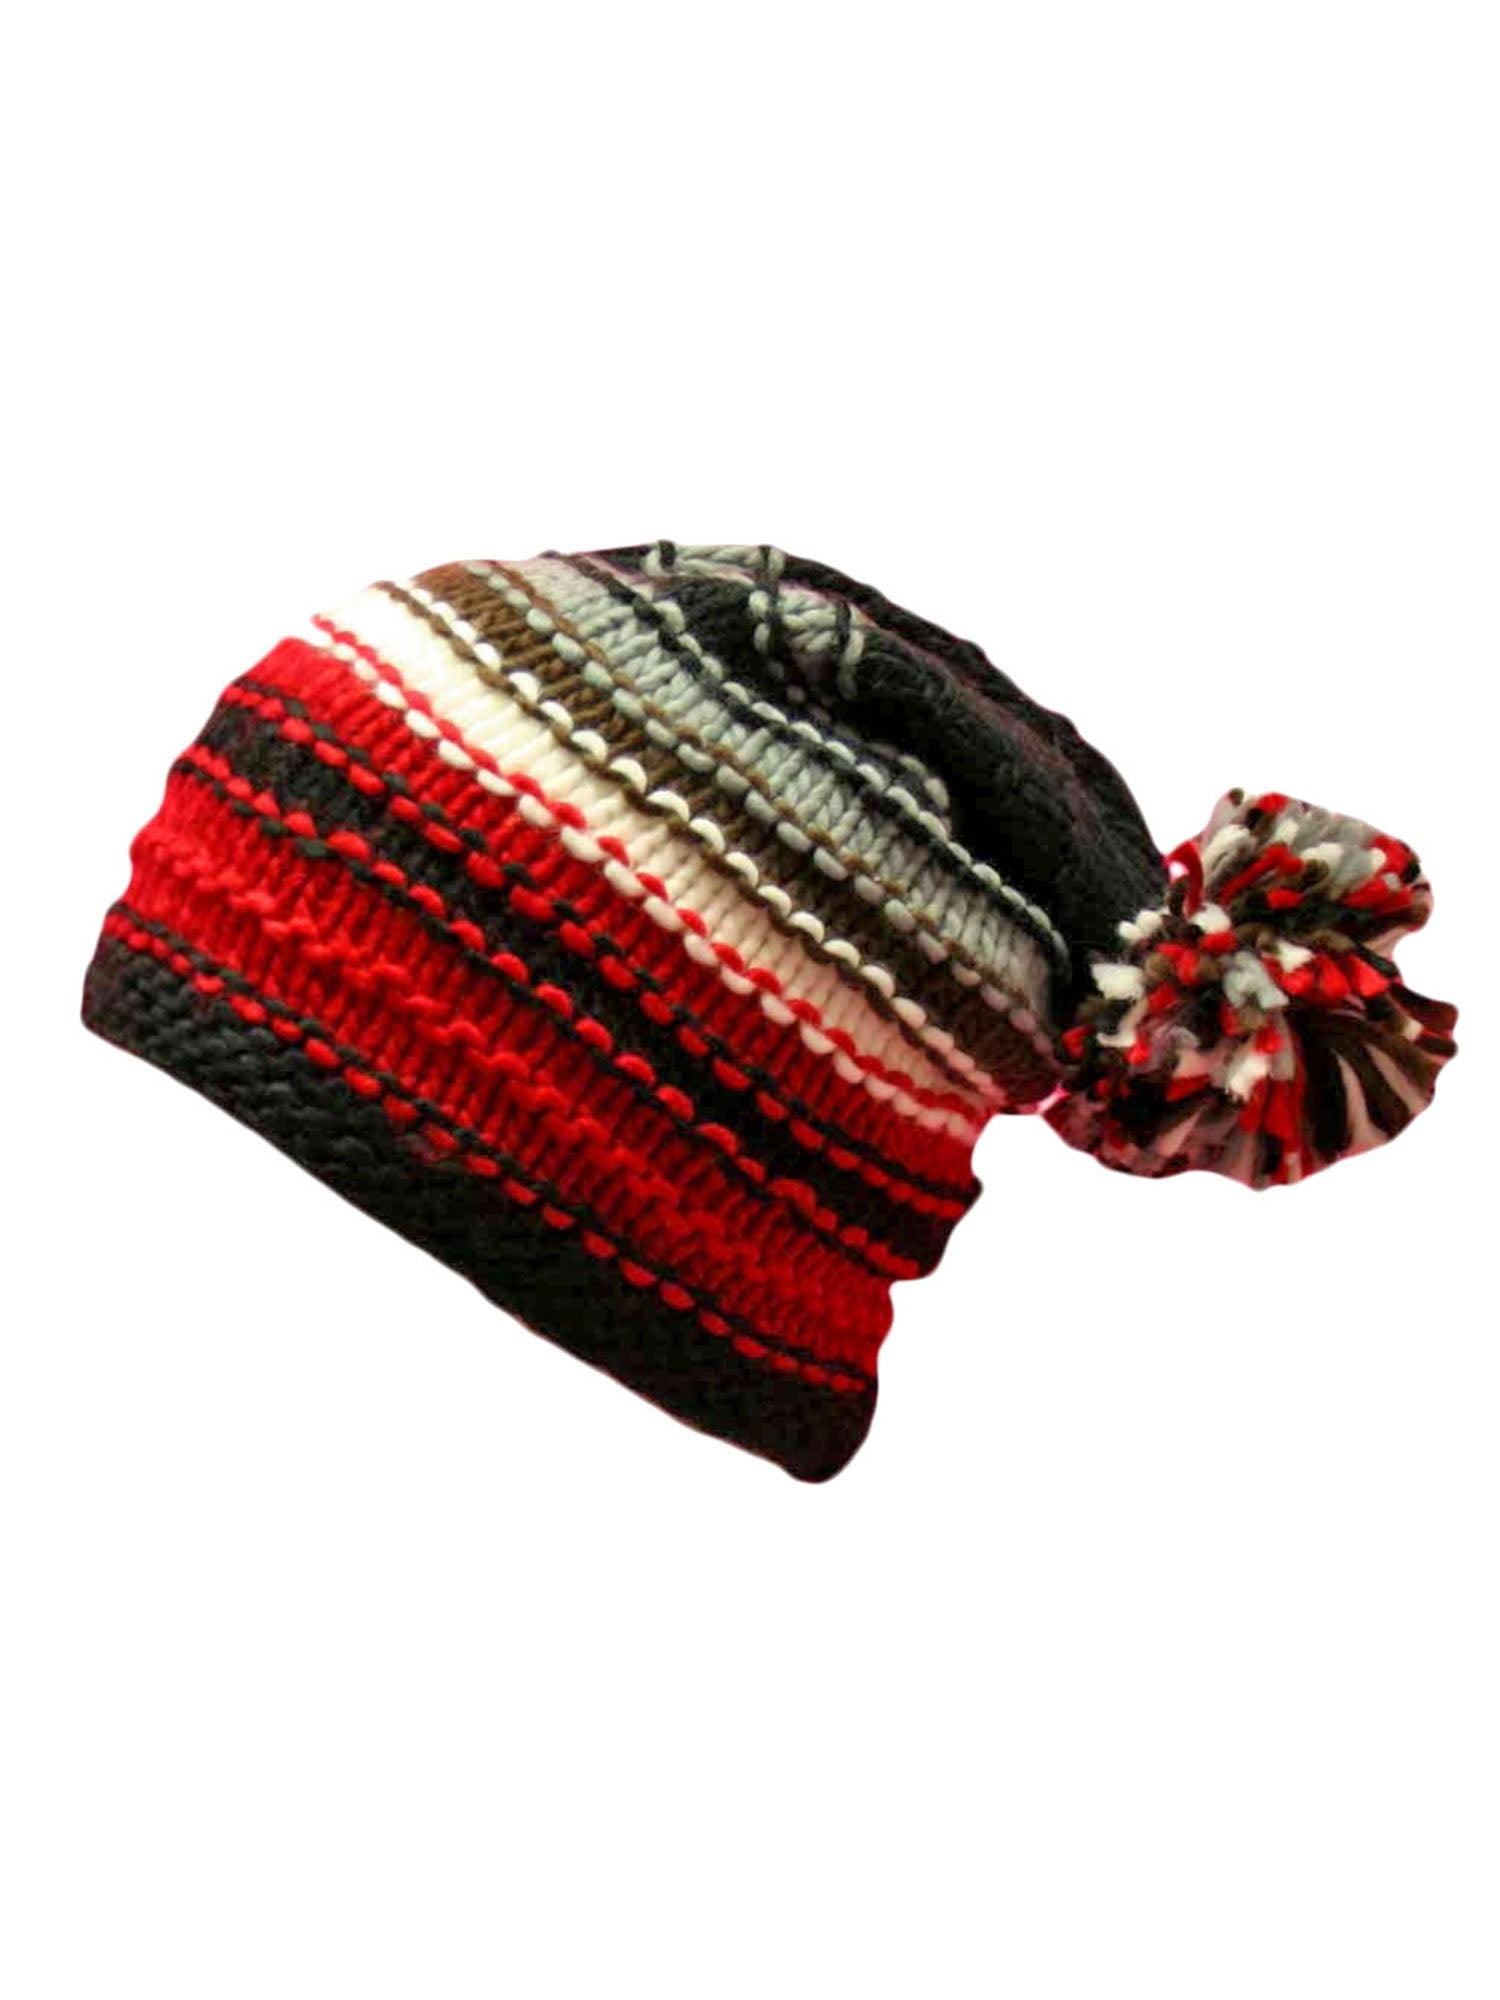 Multicolor Striped Knit Beanie Hat